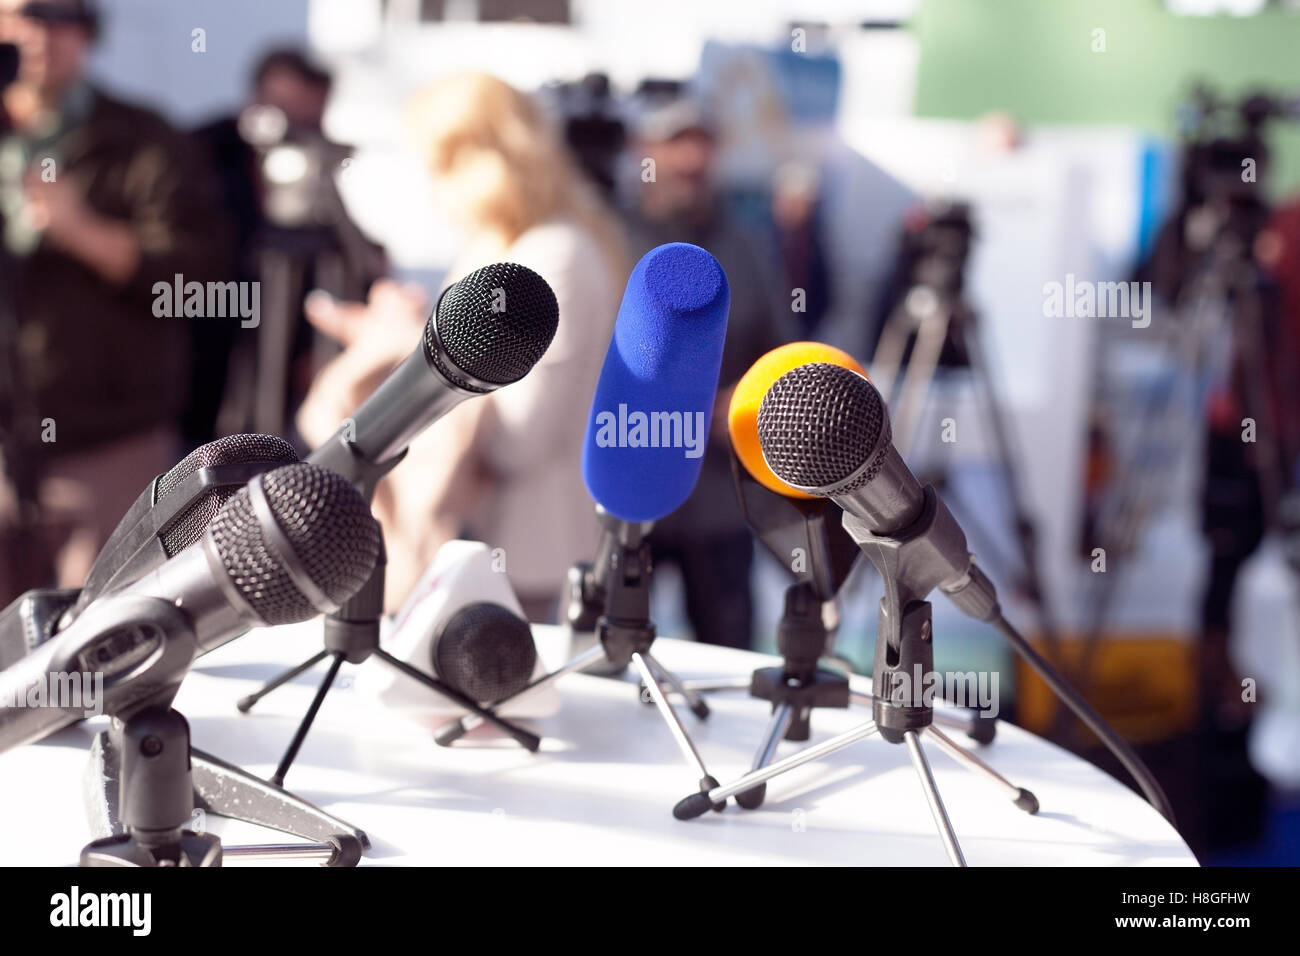 Microphones at press conference - Stock Image